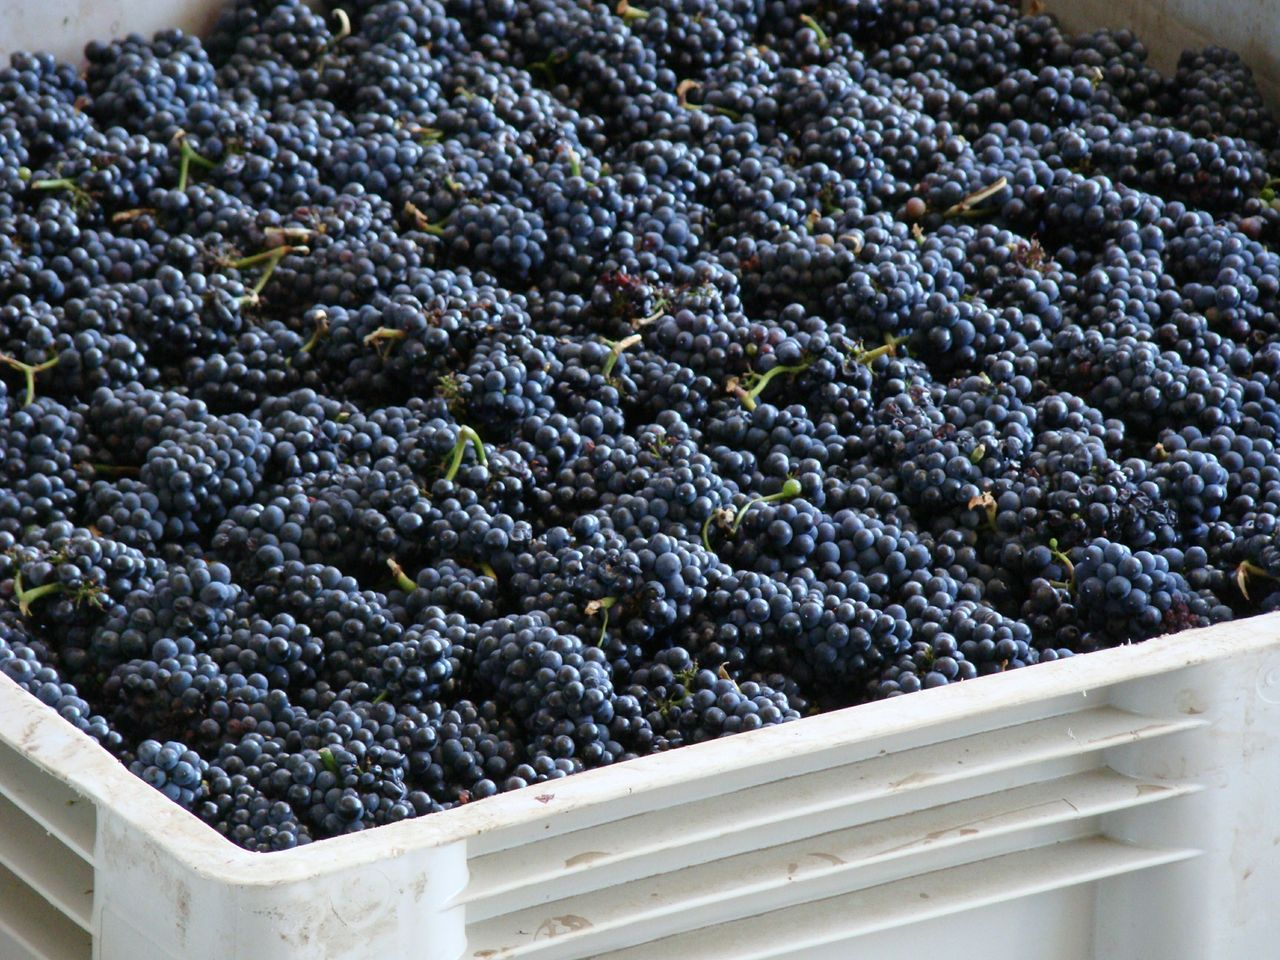 Grapes in a bin ready to be crushed at Rack & Riddle.jpg